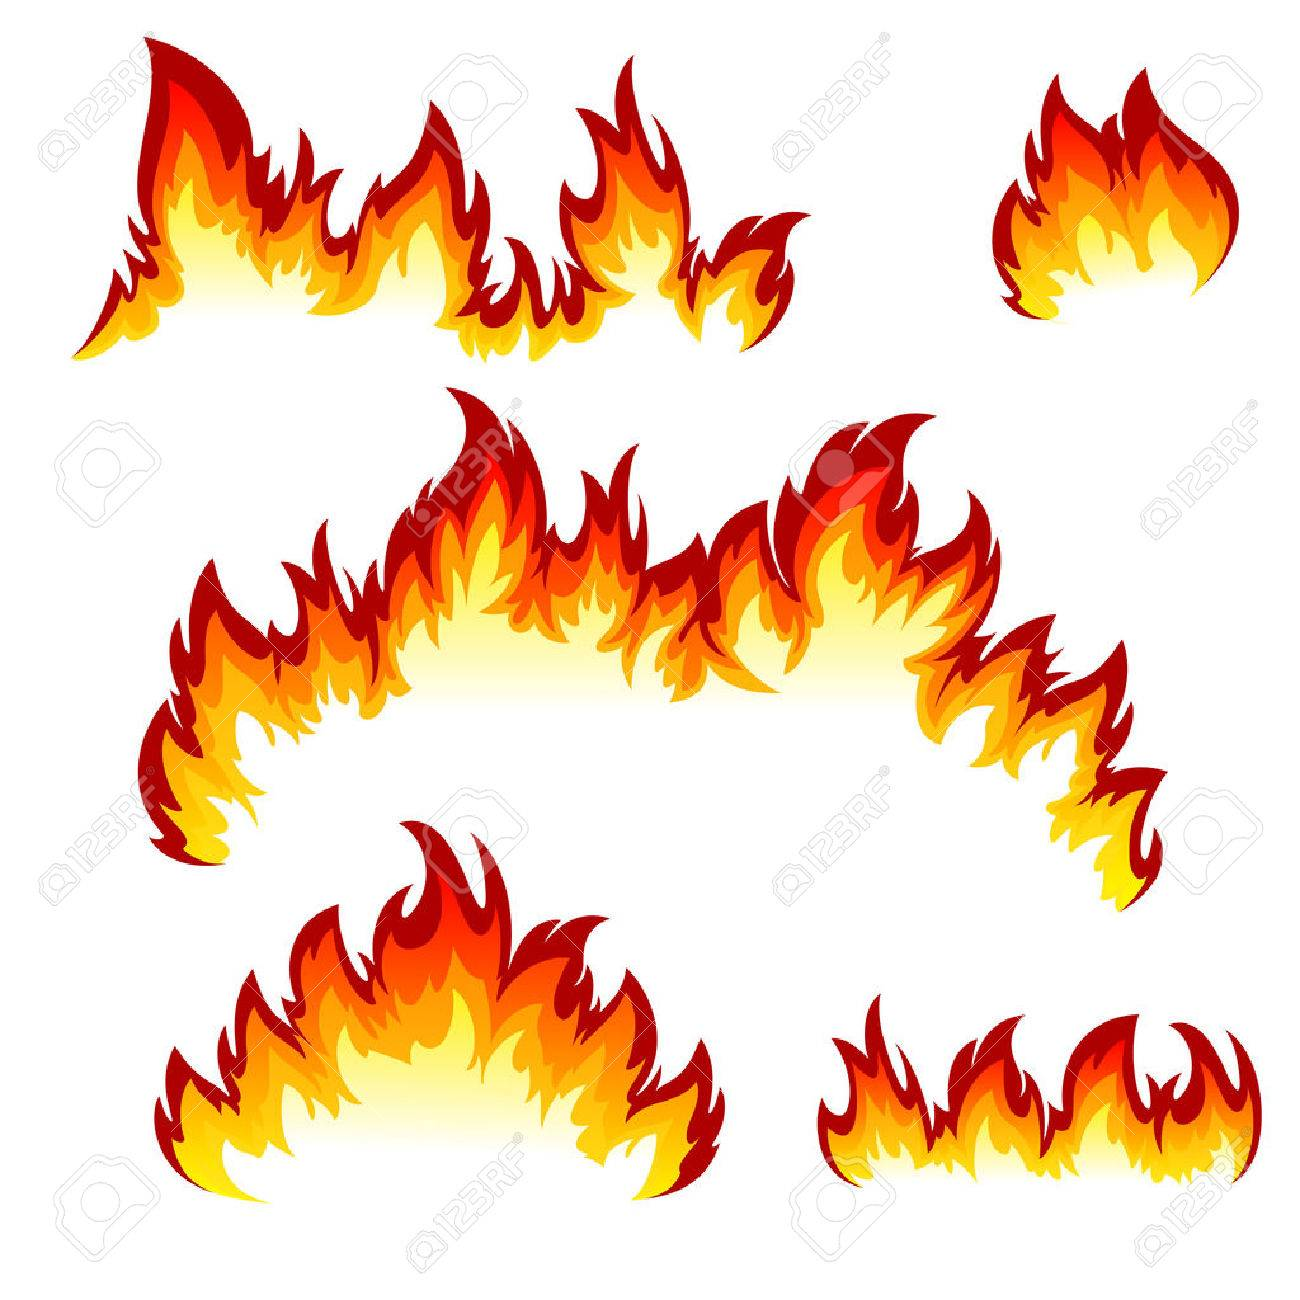 Flames of different shapes on a white background. - 30828964